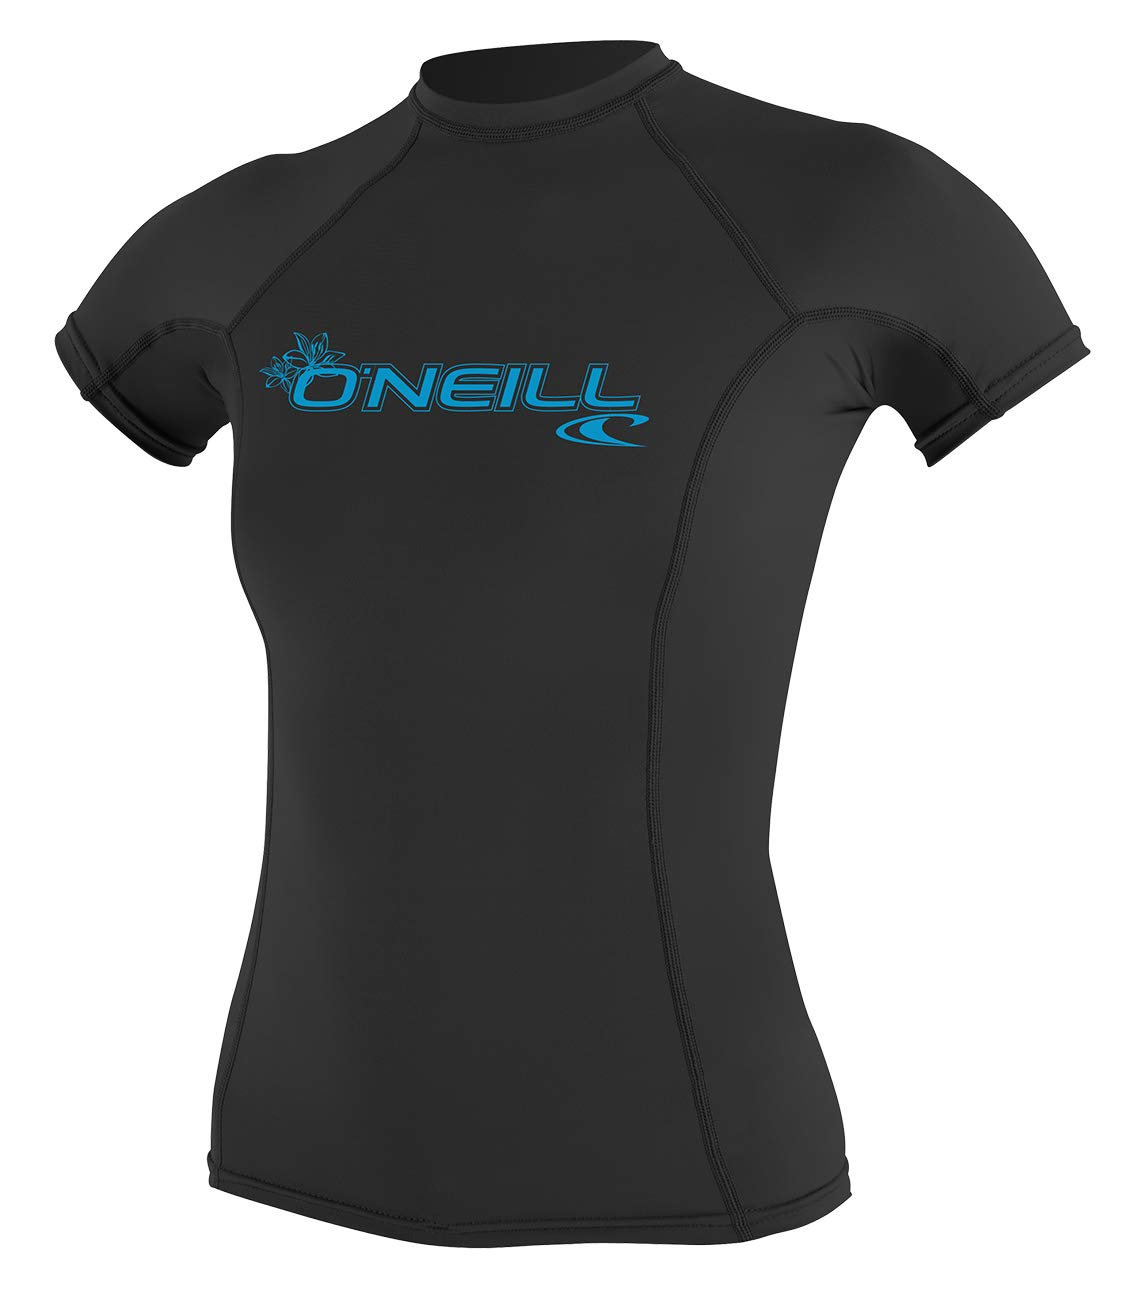 O'Neill Women's Basic 50+ Skins Short Sleeve Rash Guard, Black, X-Small by O'Neill Wetsuits